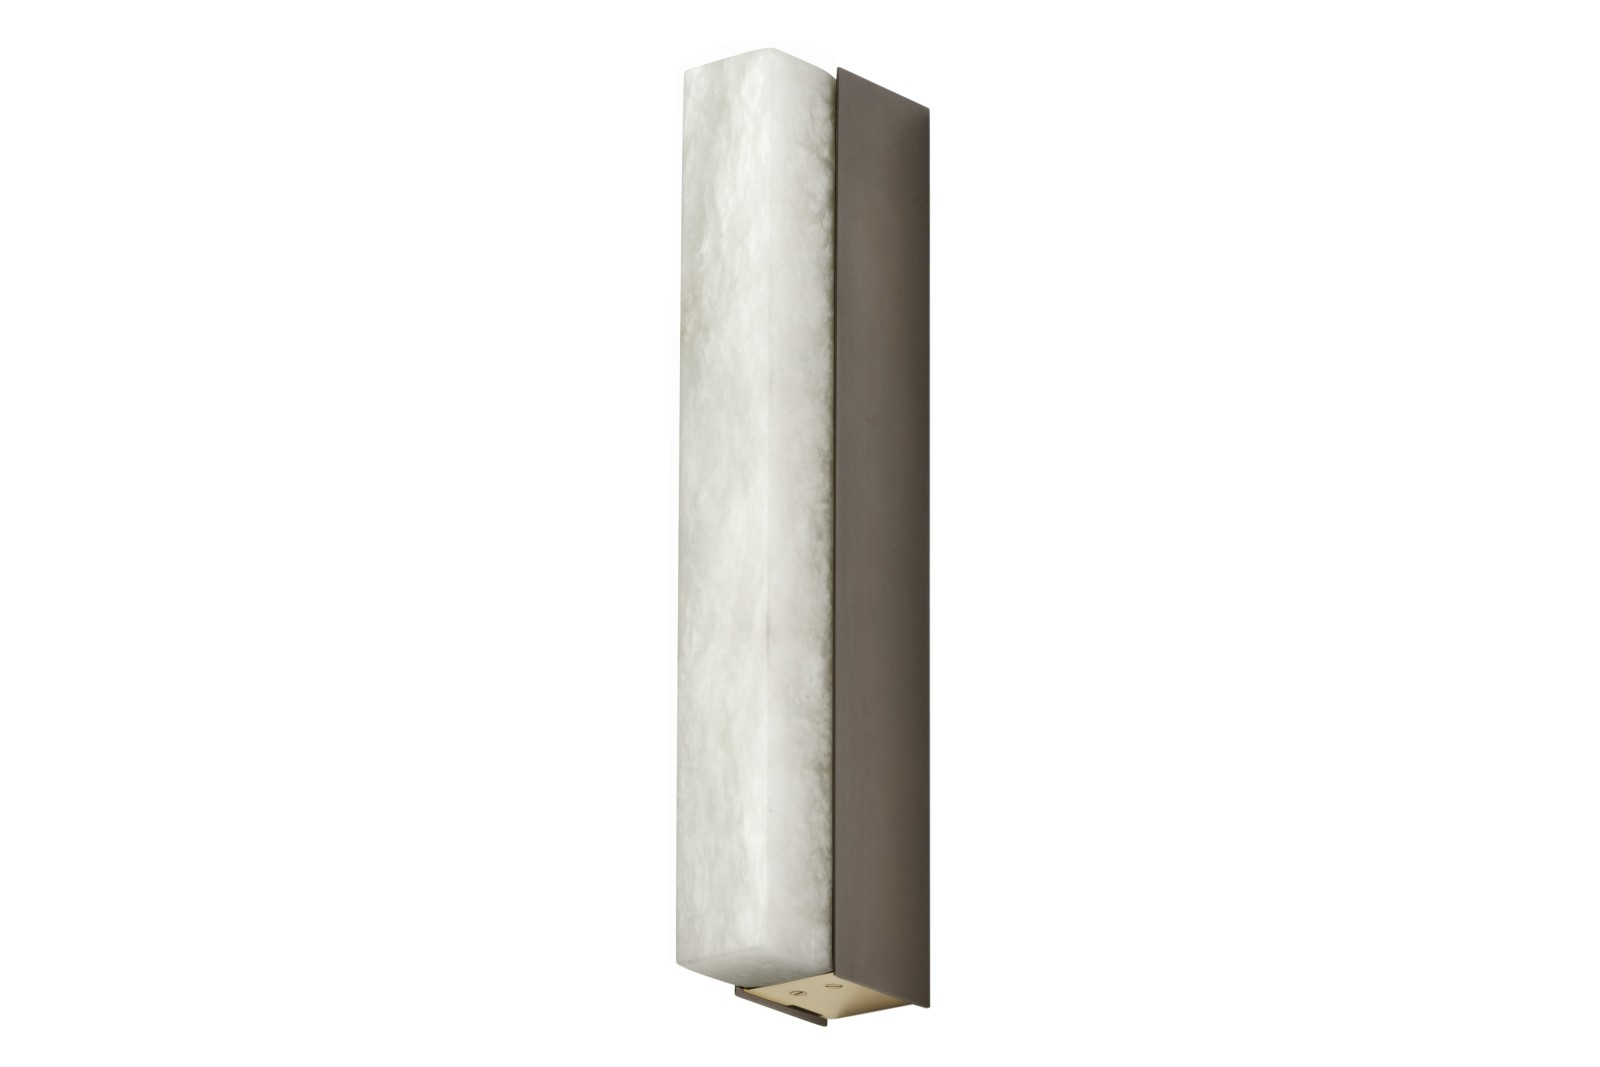 Artés Wall Light 300 bronze with satin brass details and honed alabaster